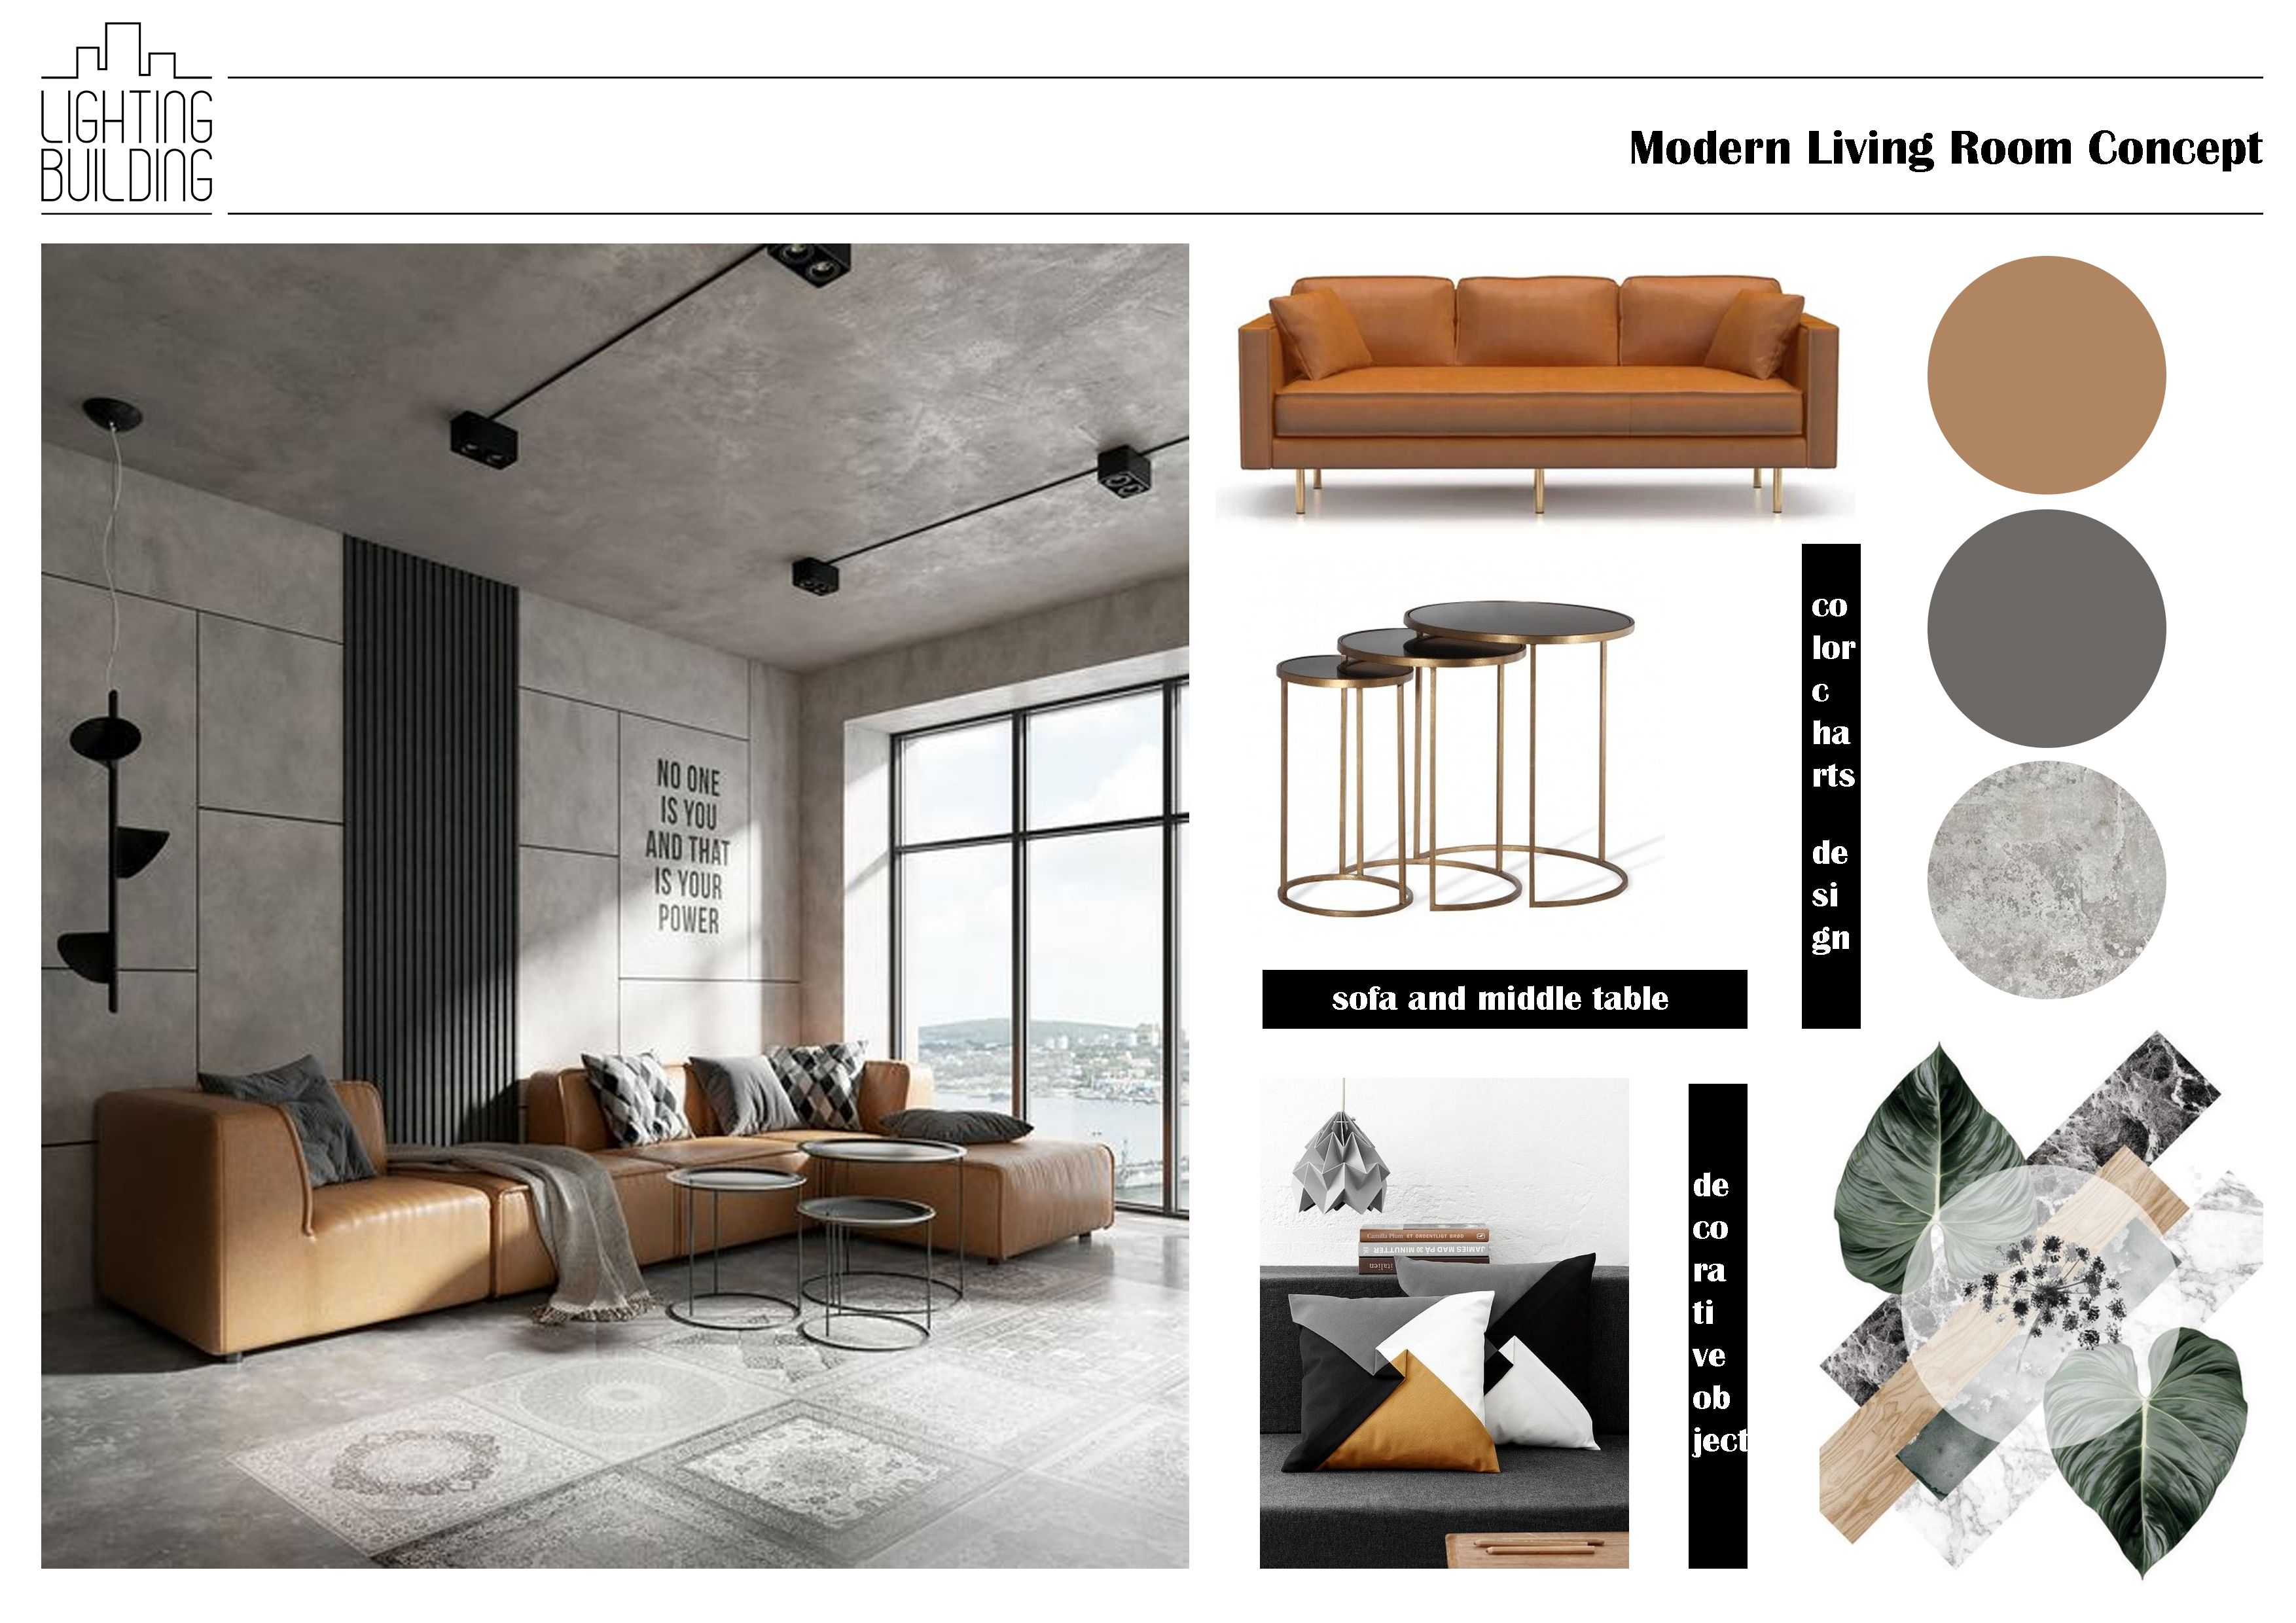 Modern Living Room In 2020 With Images Interior Design Interior Design Mood Board Interior Concept